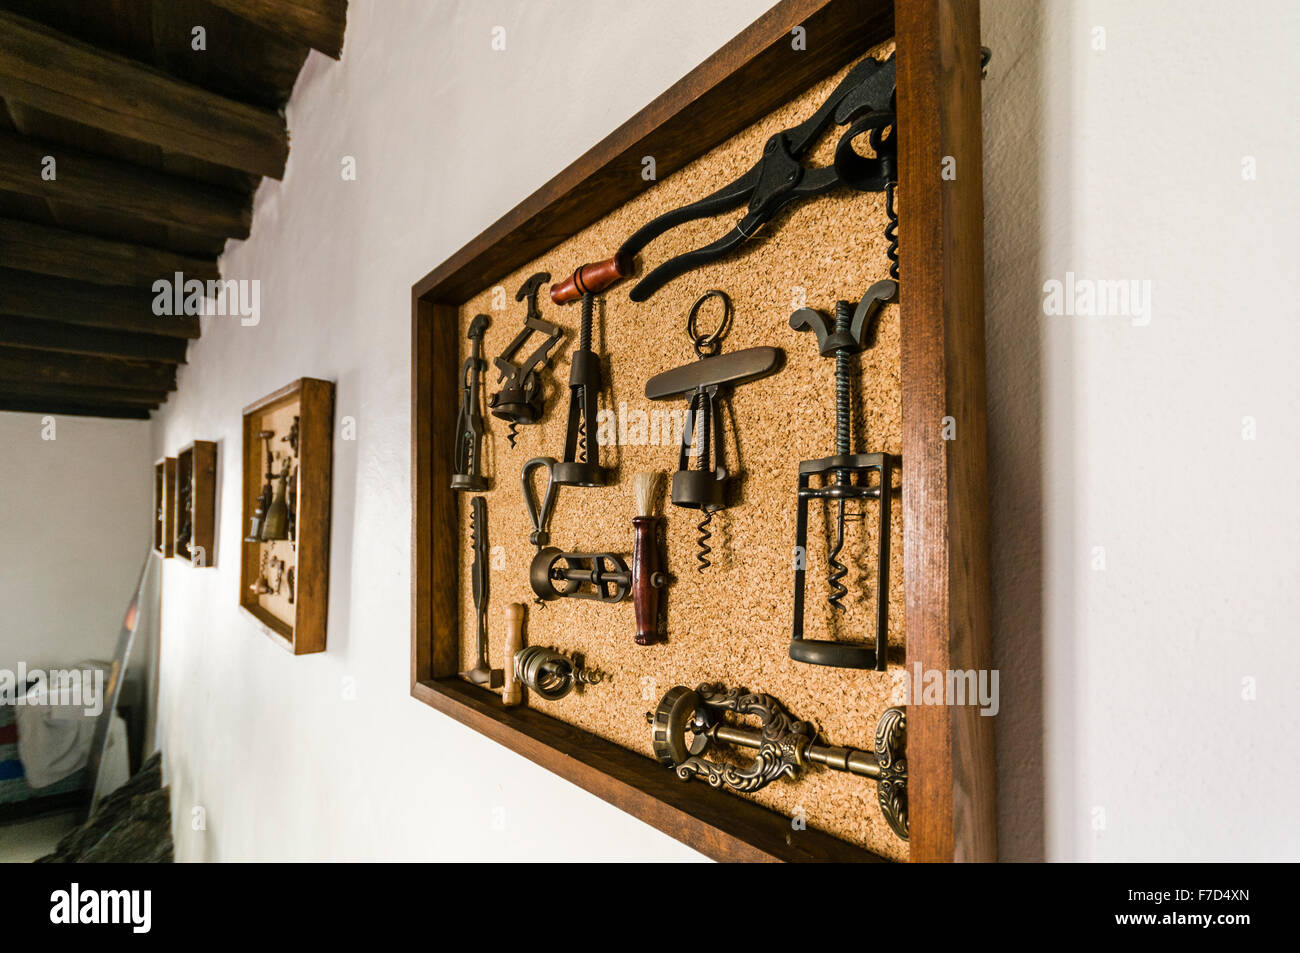 Antique wine bottle corkscrews on display in picture frames at a vineyard museum in Lanzarote - Stock Image